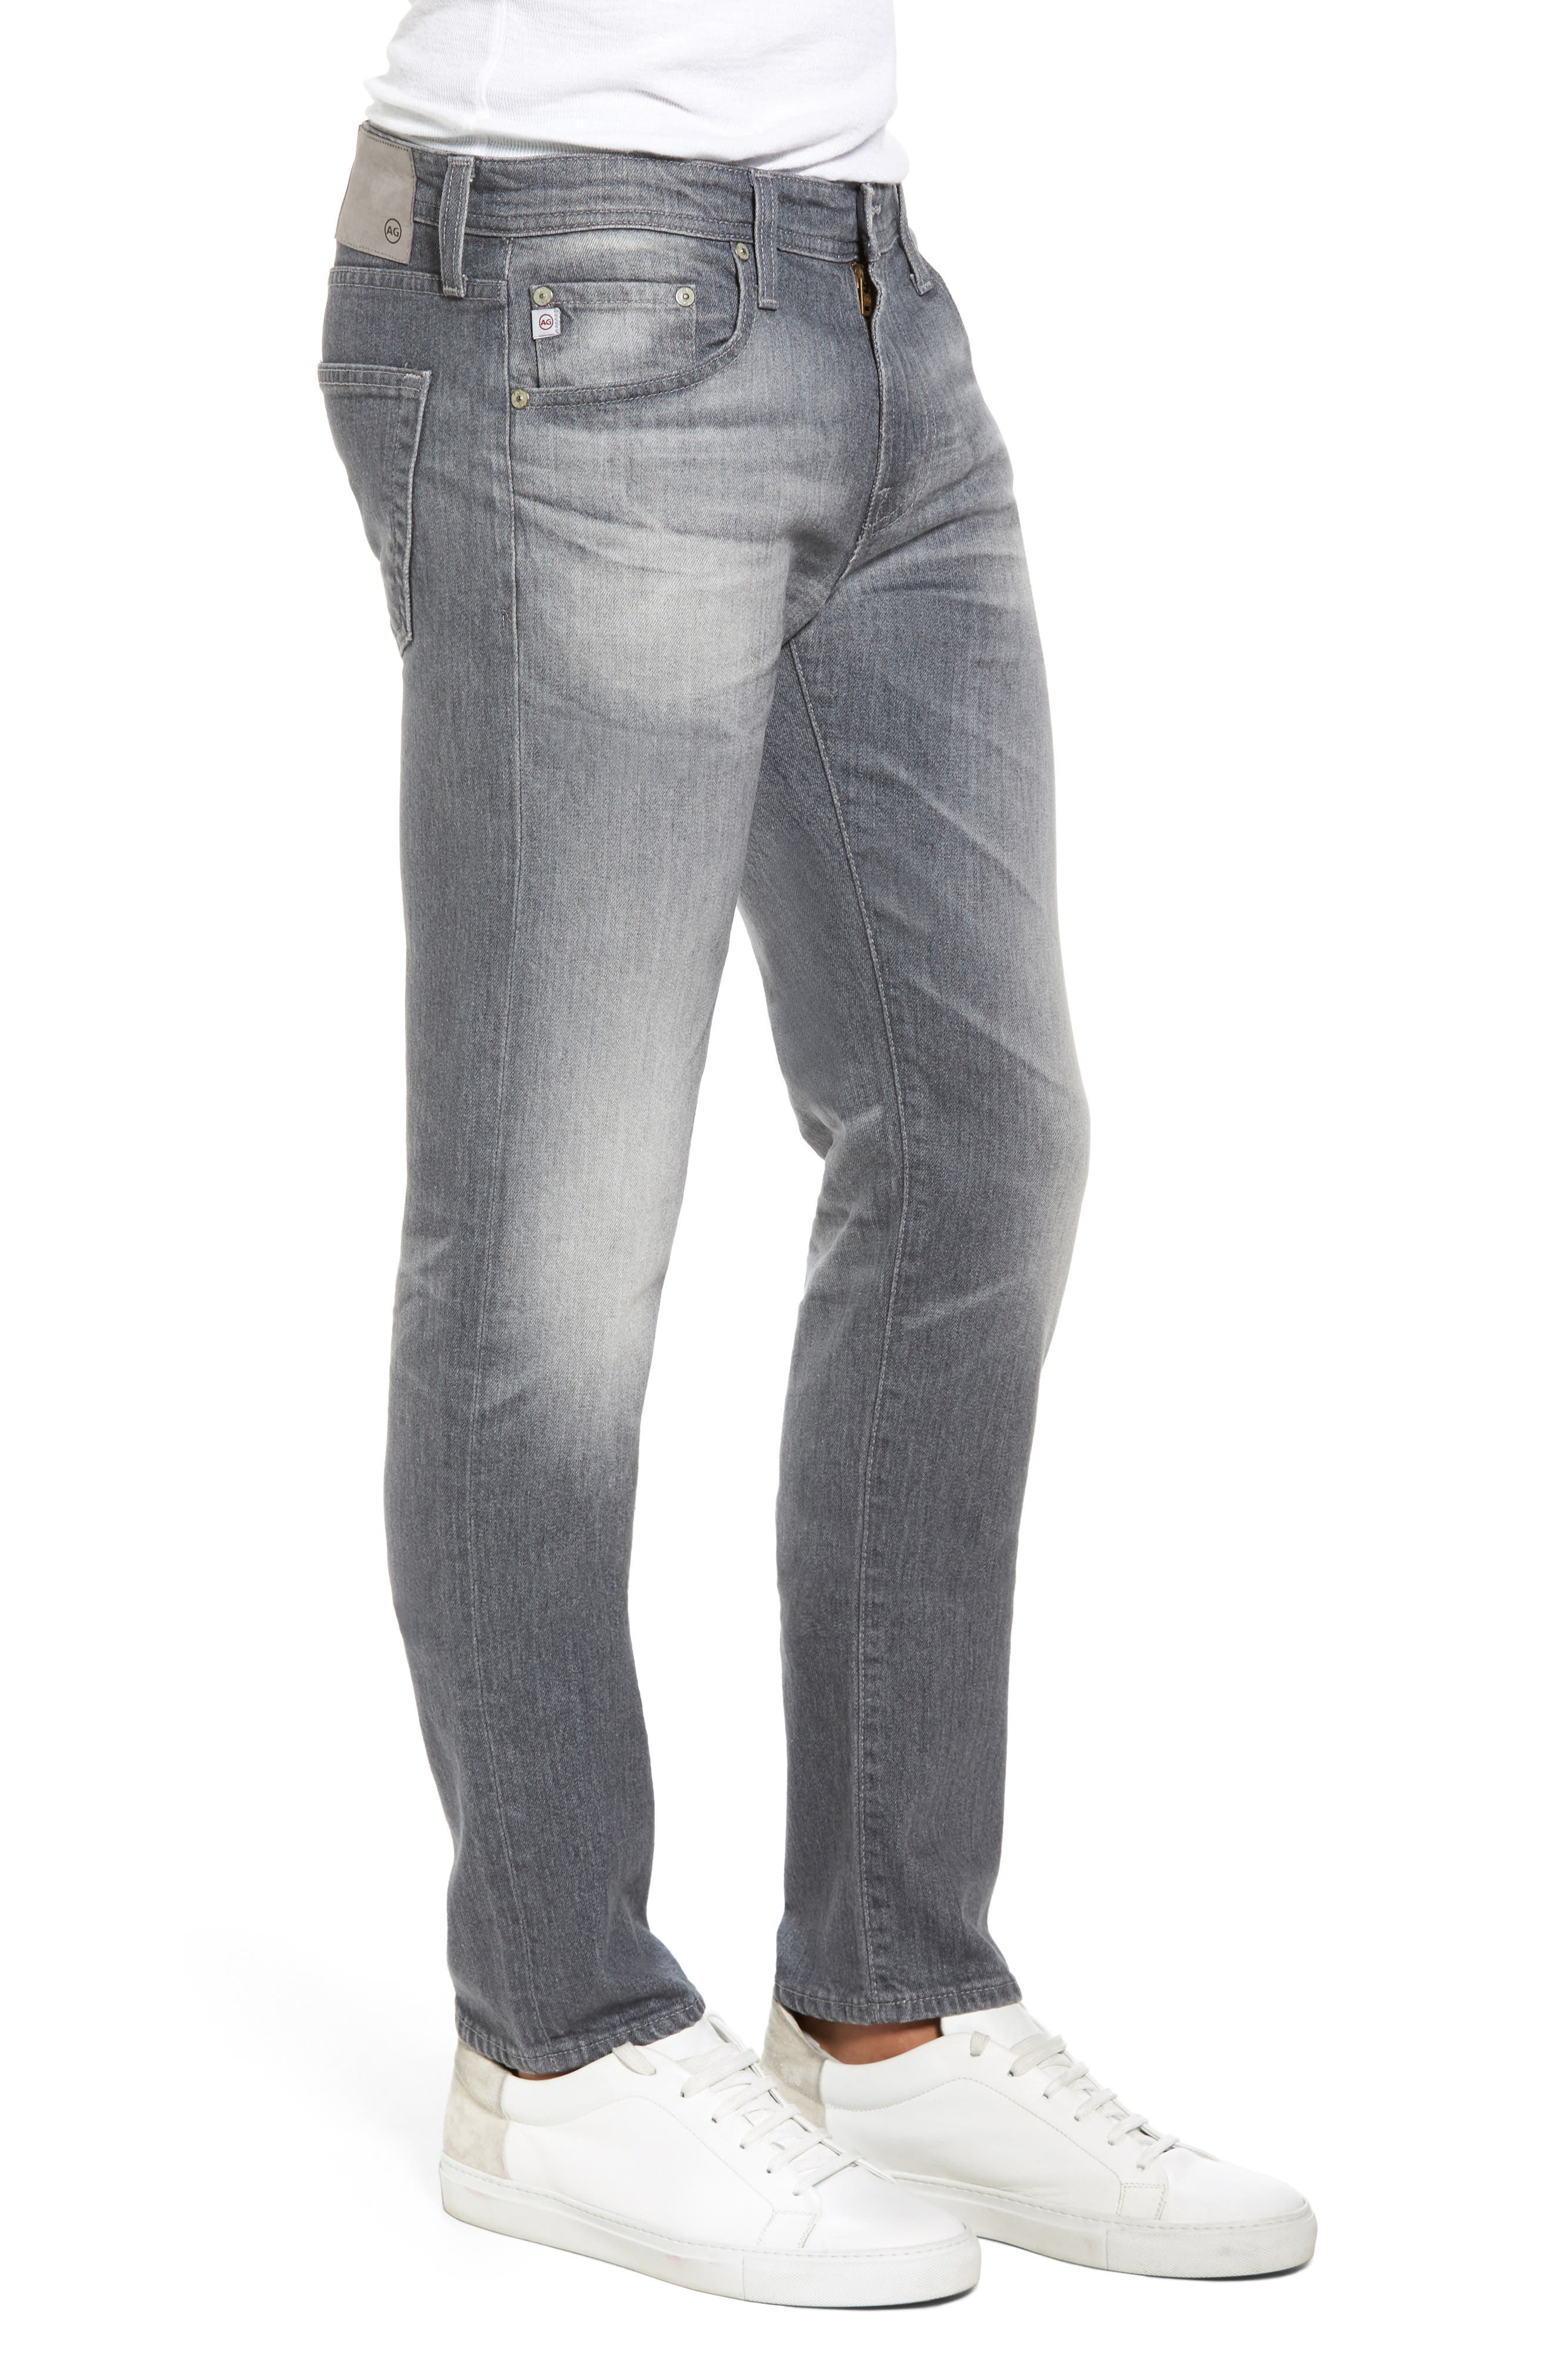 Tellis Modern Slim Fit Jeans,                             Alternate thumbnail 3, color,                             13 Years Fortress